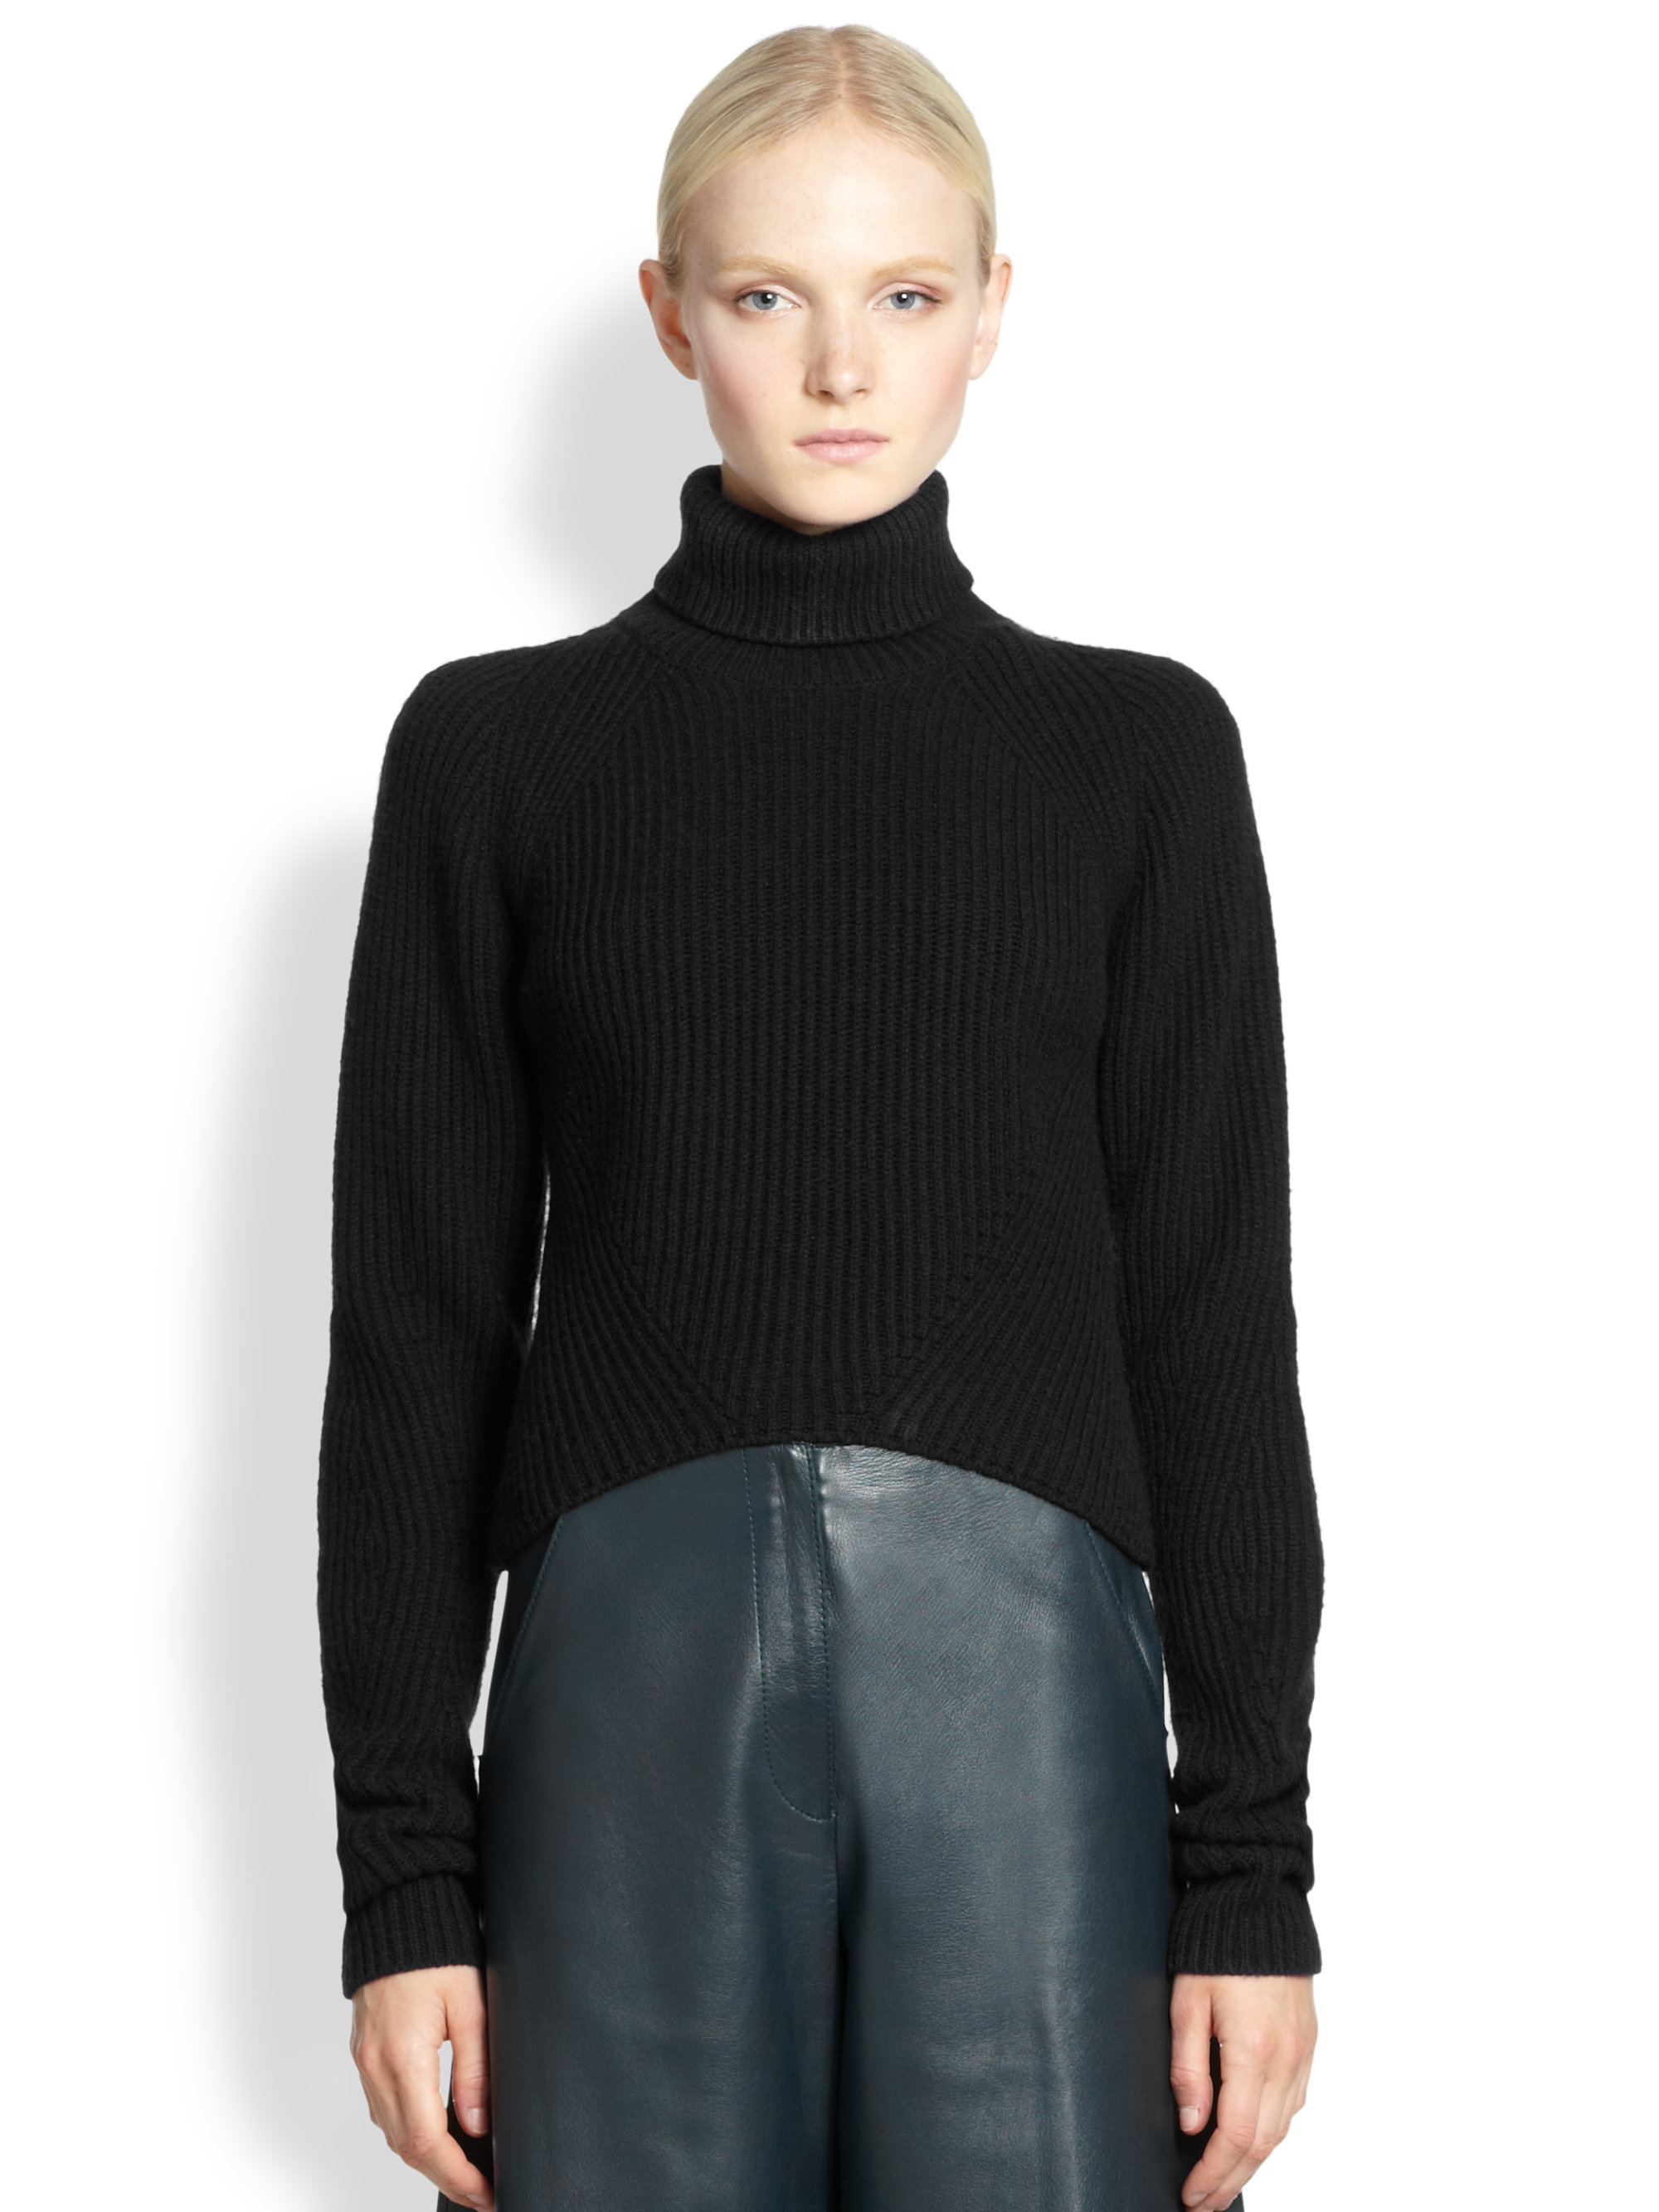 Derek lam Cropped Cashmere Turtleneck Sweater in Black | Lyst